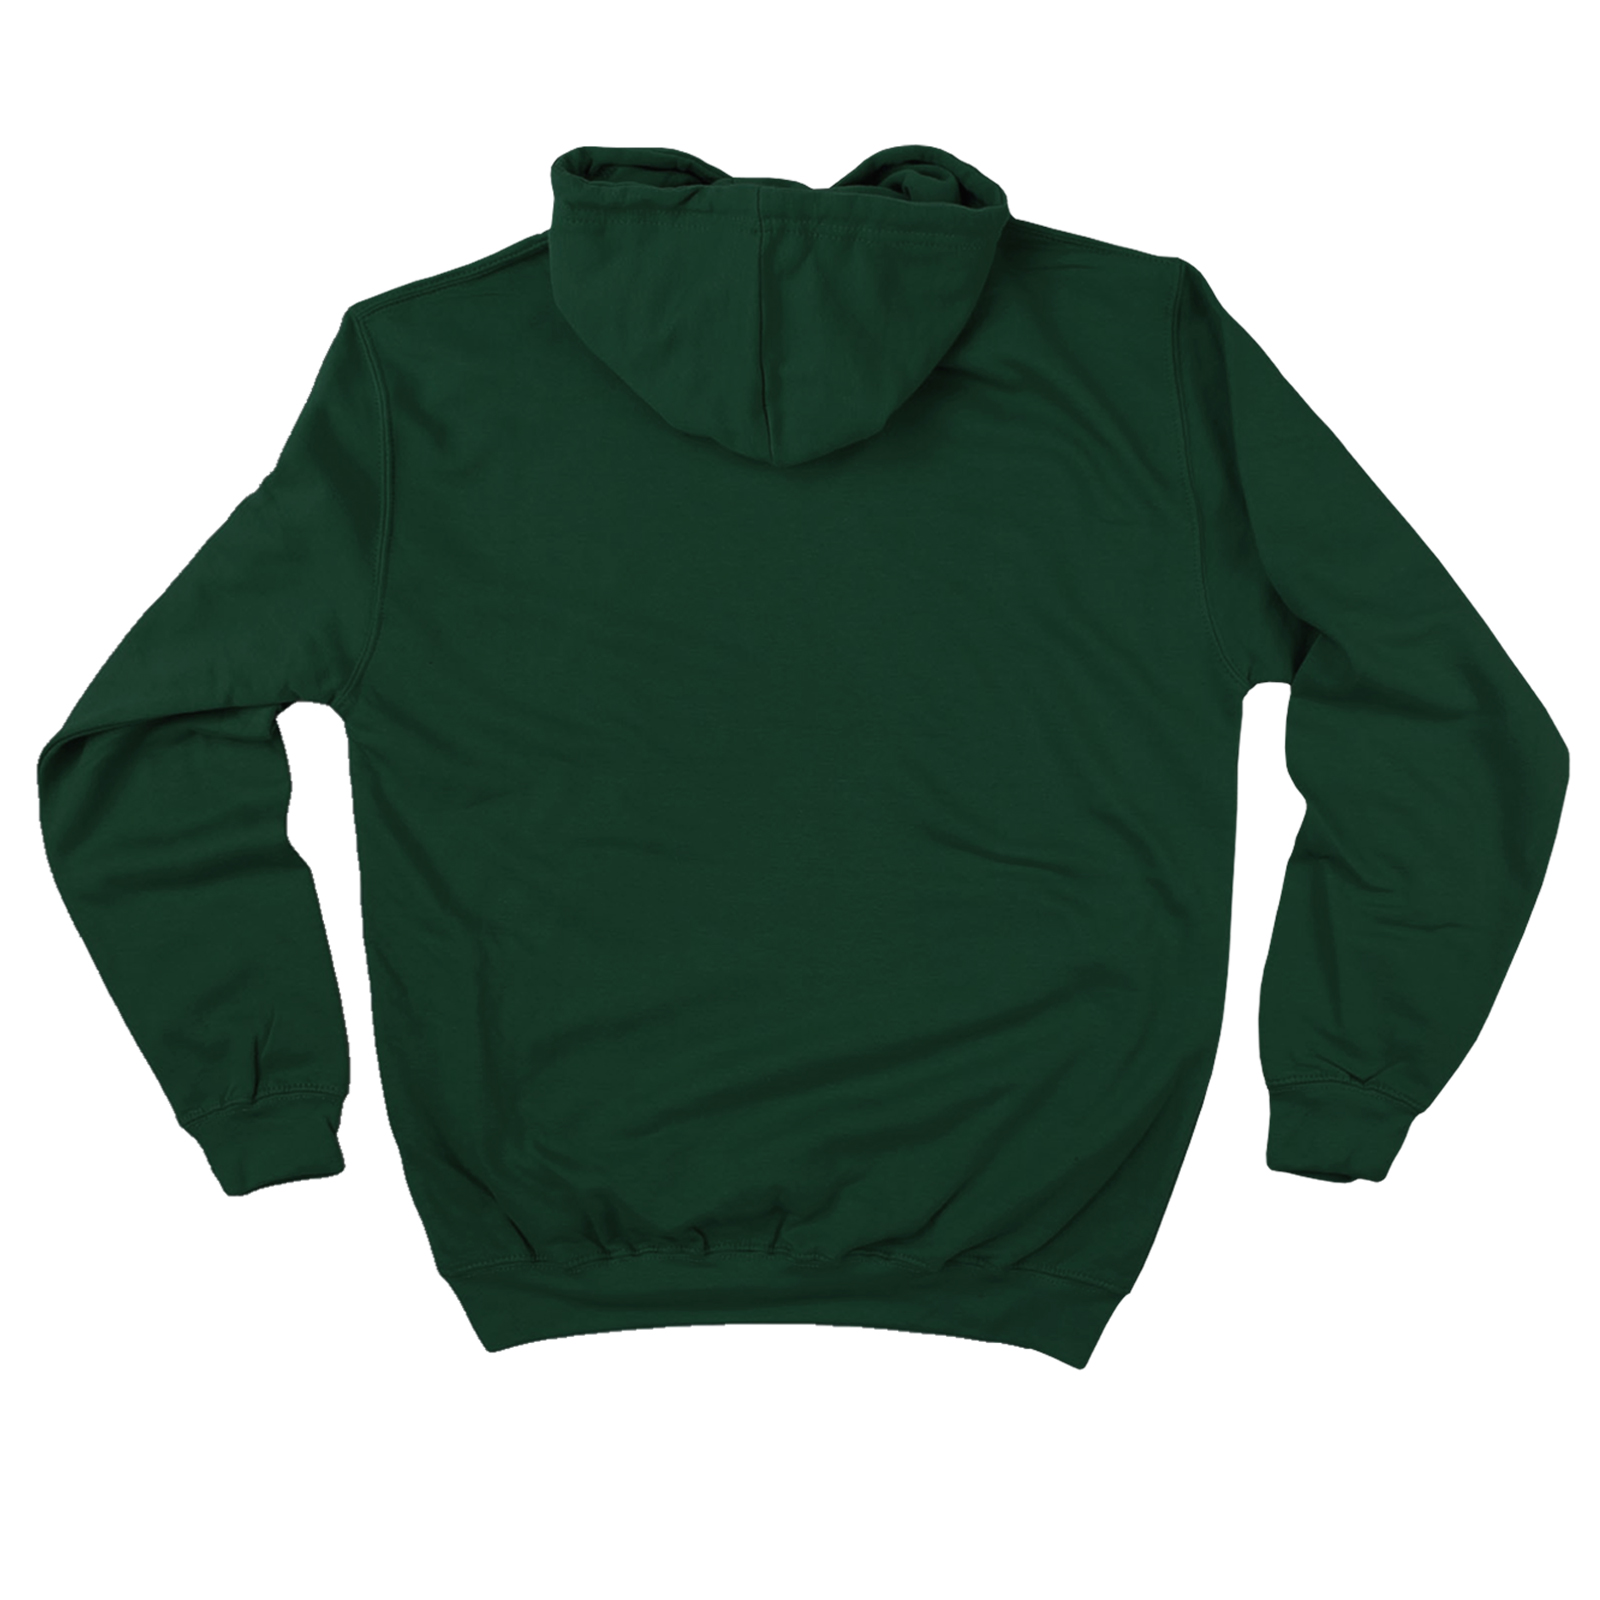 Fishing-Hoodie-Hoody-Funny-Novelty-hooded-Top-If-You-Can-Read-This-Youre-Fishi thumbnail 15